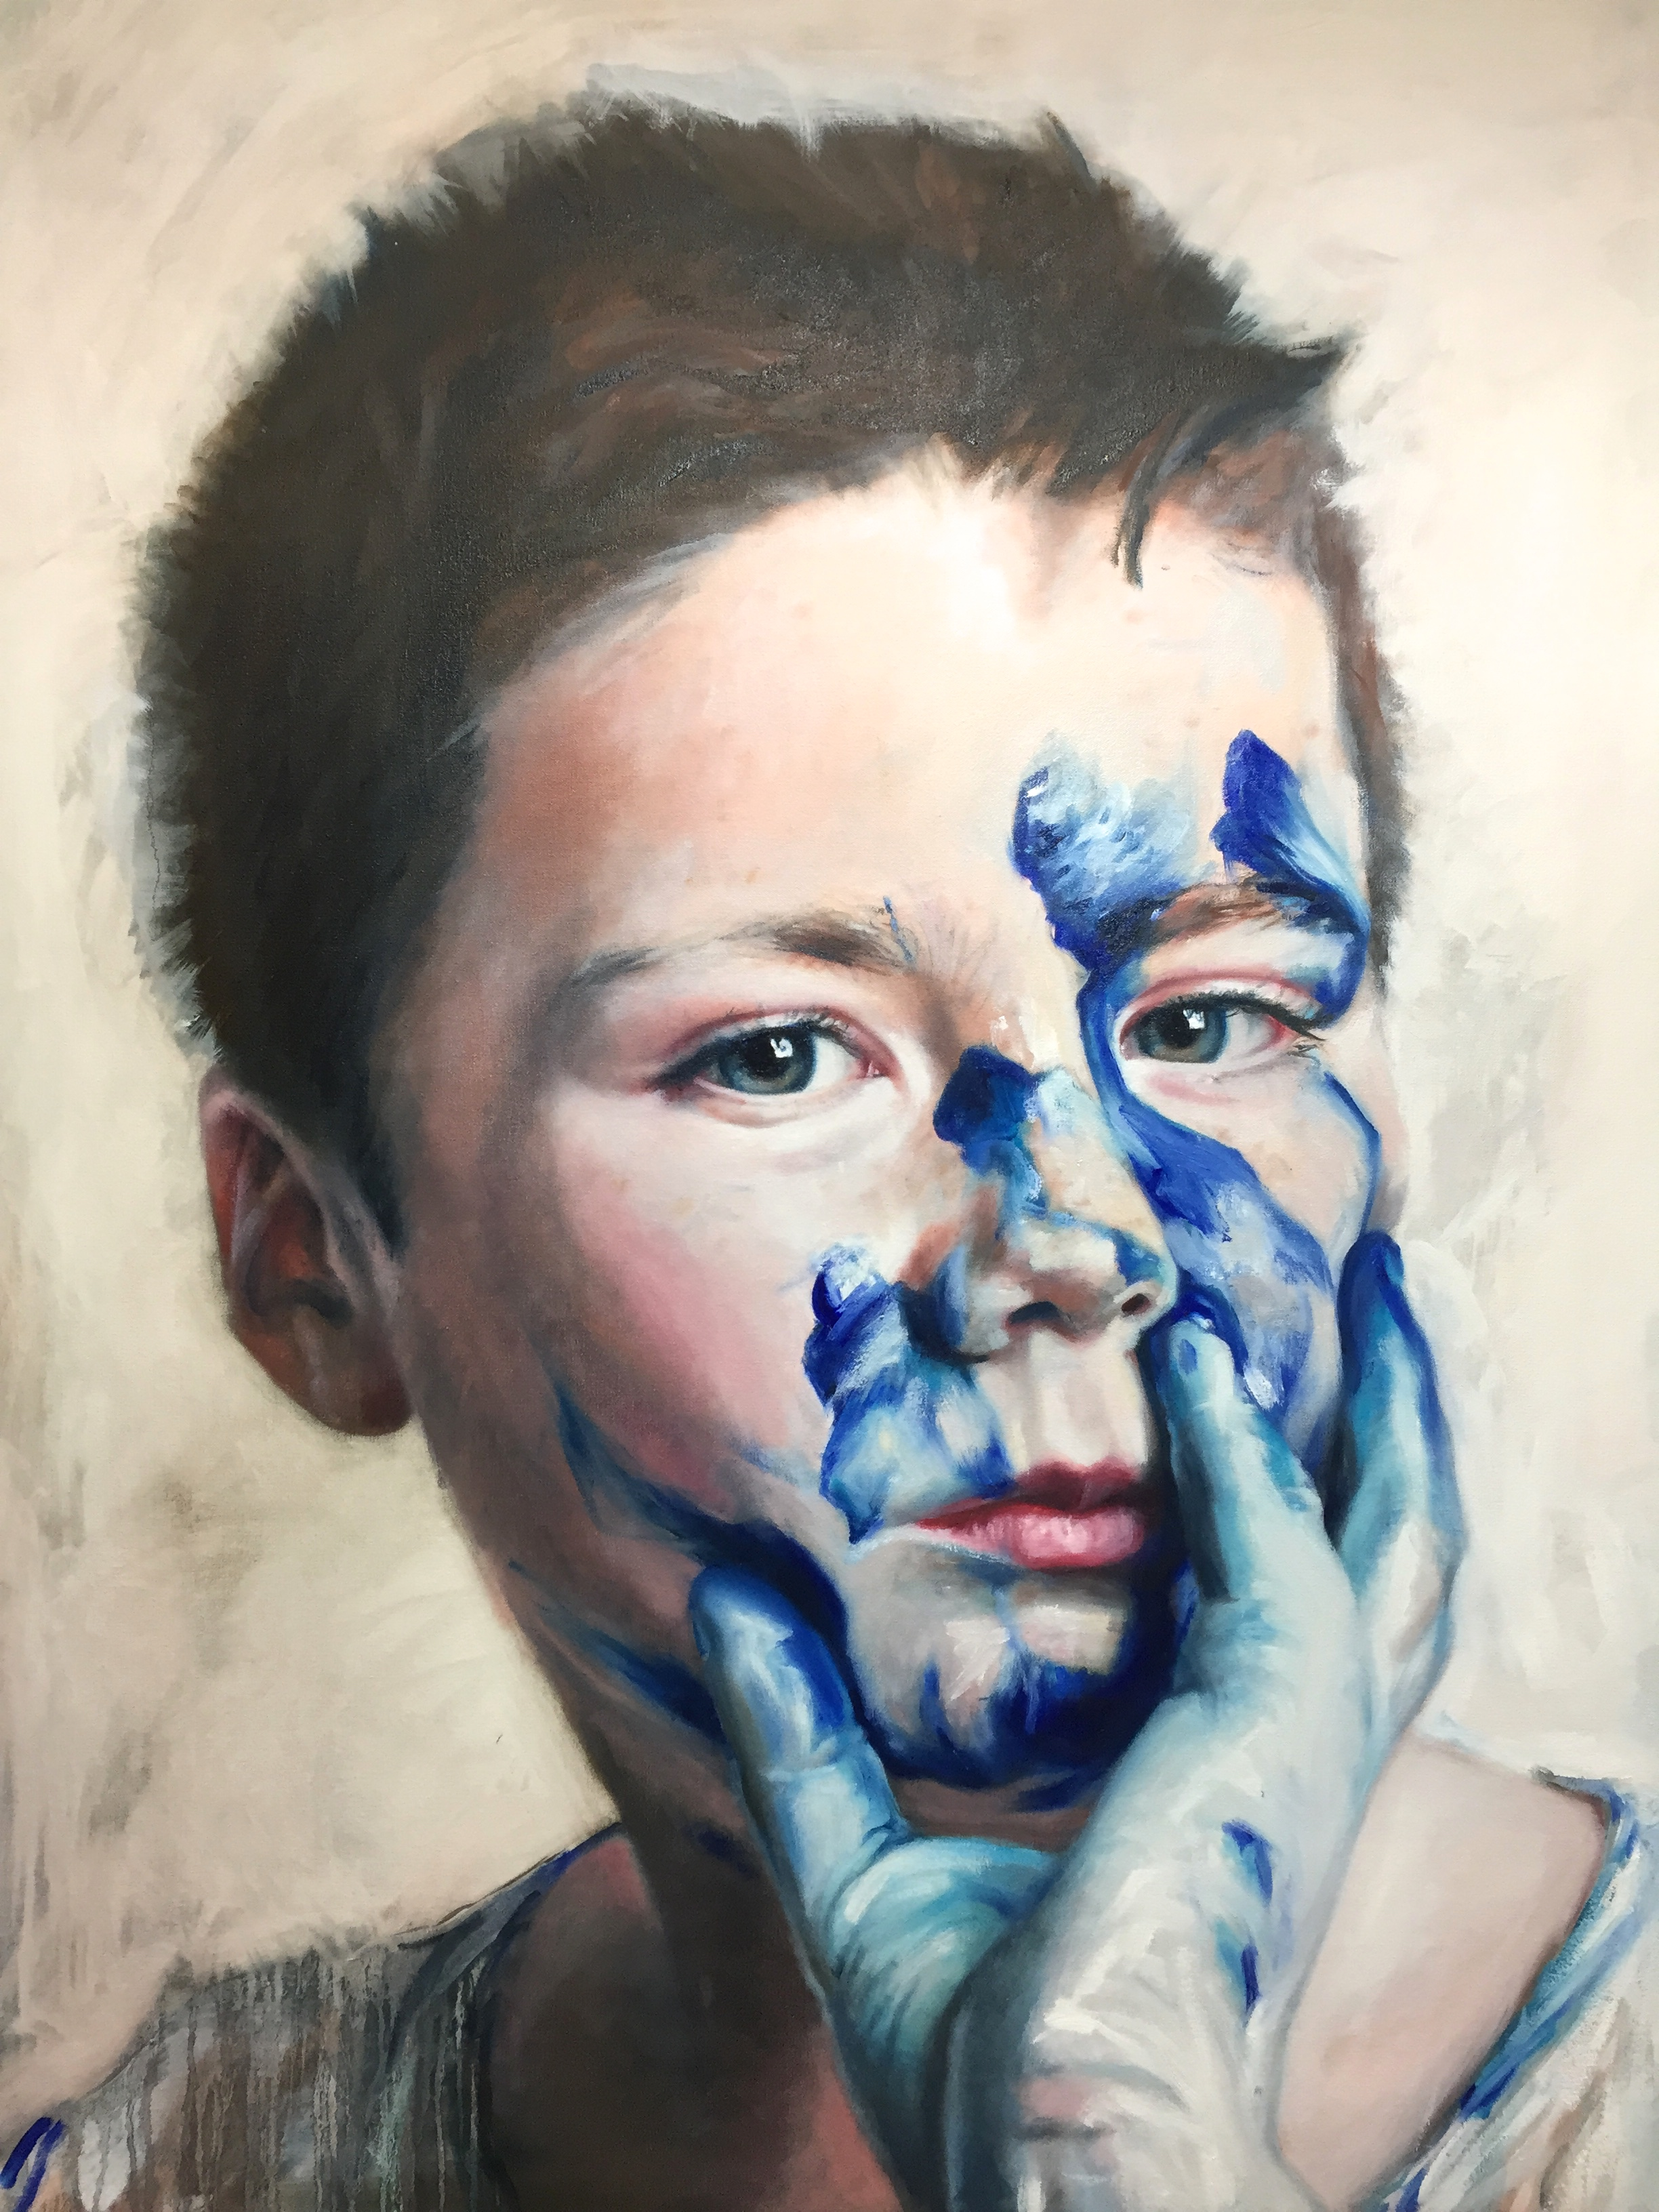 Chelsea Blue Paint Play, Oliver commission, 90x120cm, Oil on Canvas (SOLD)